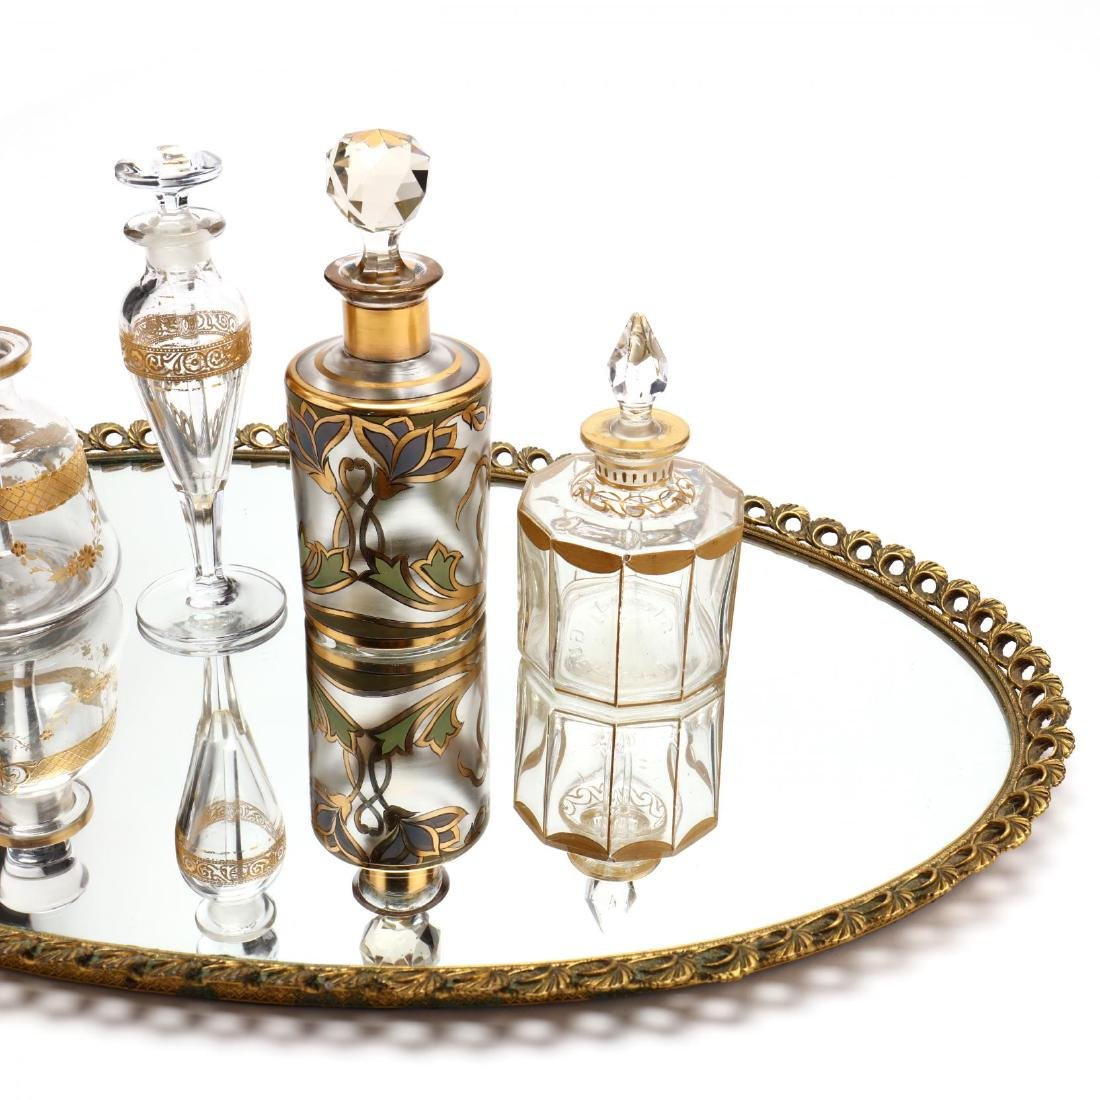 A Vintage Vanity Tray and Four Antique Scent Bottles - 4